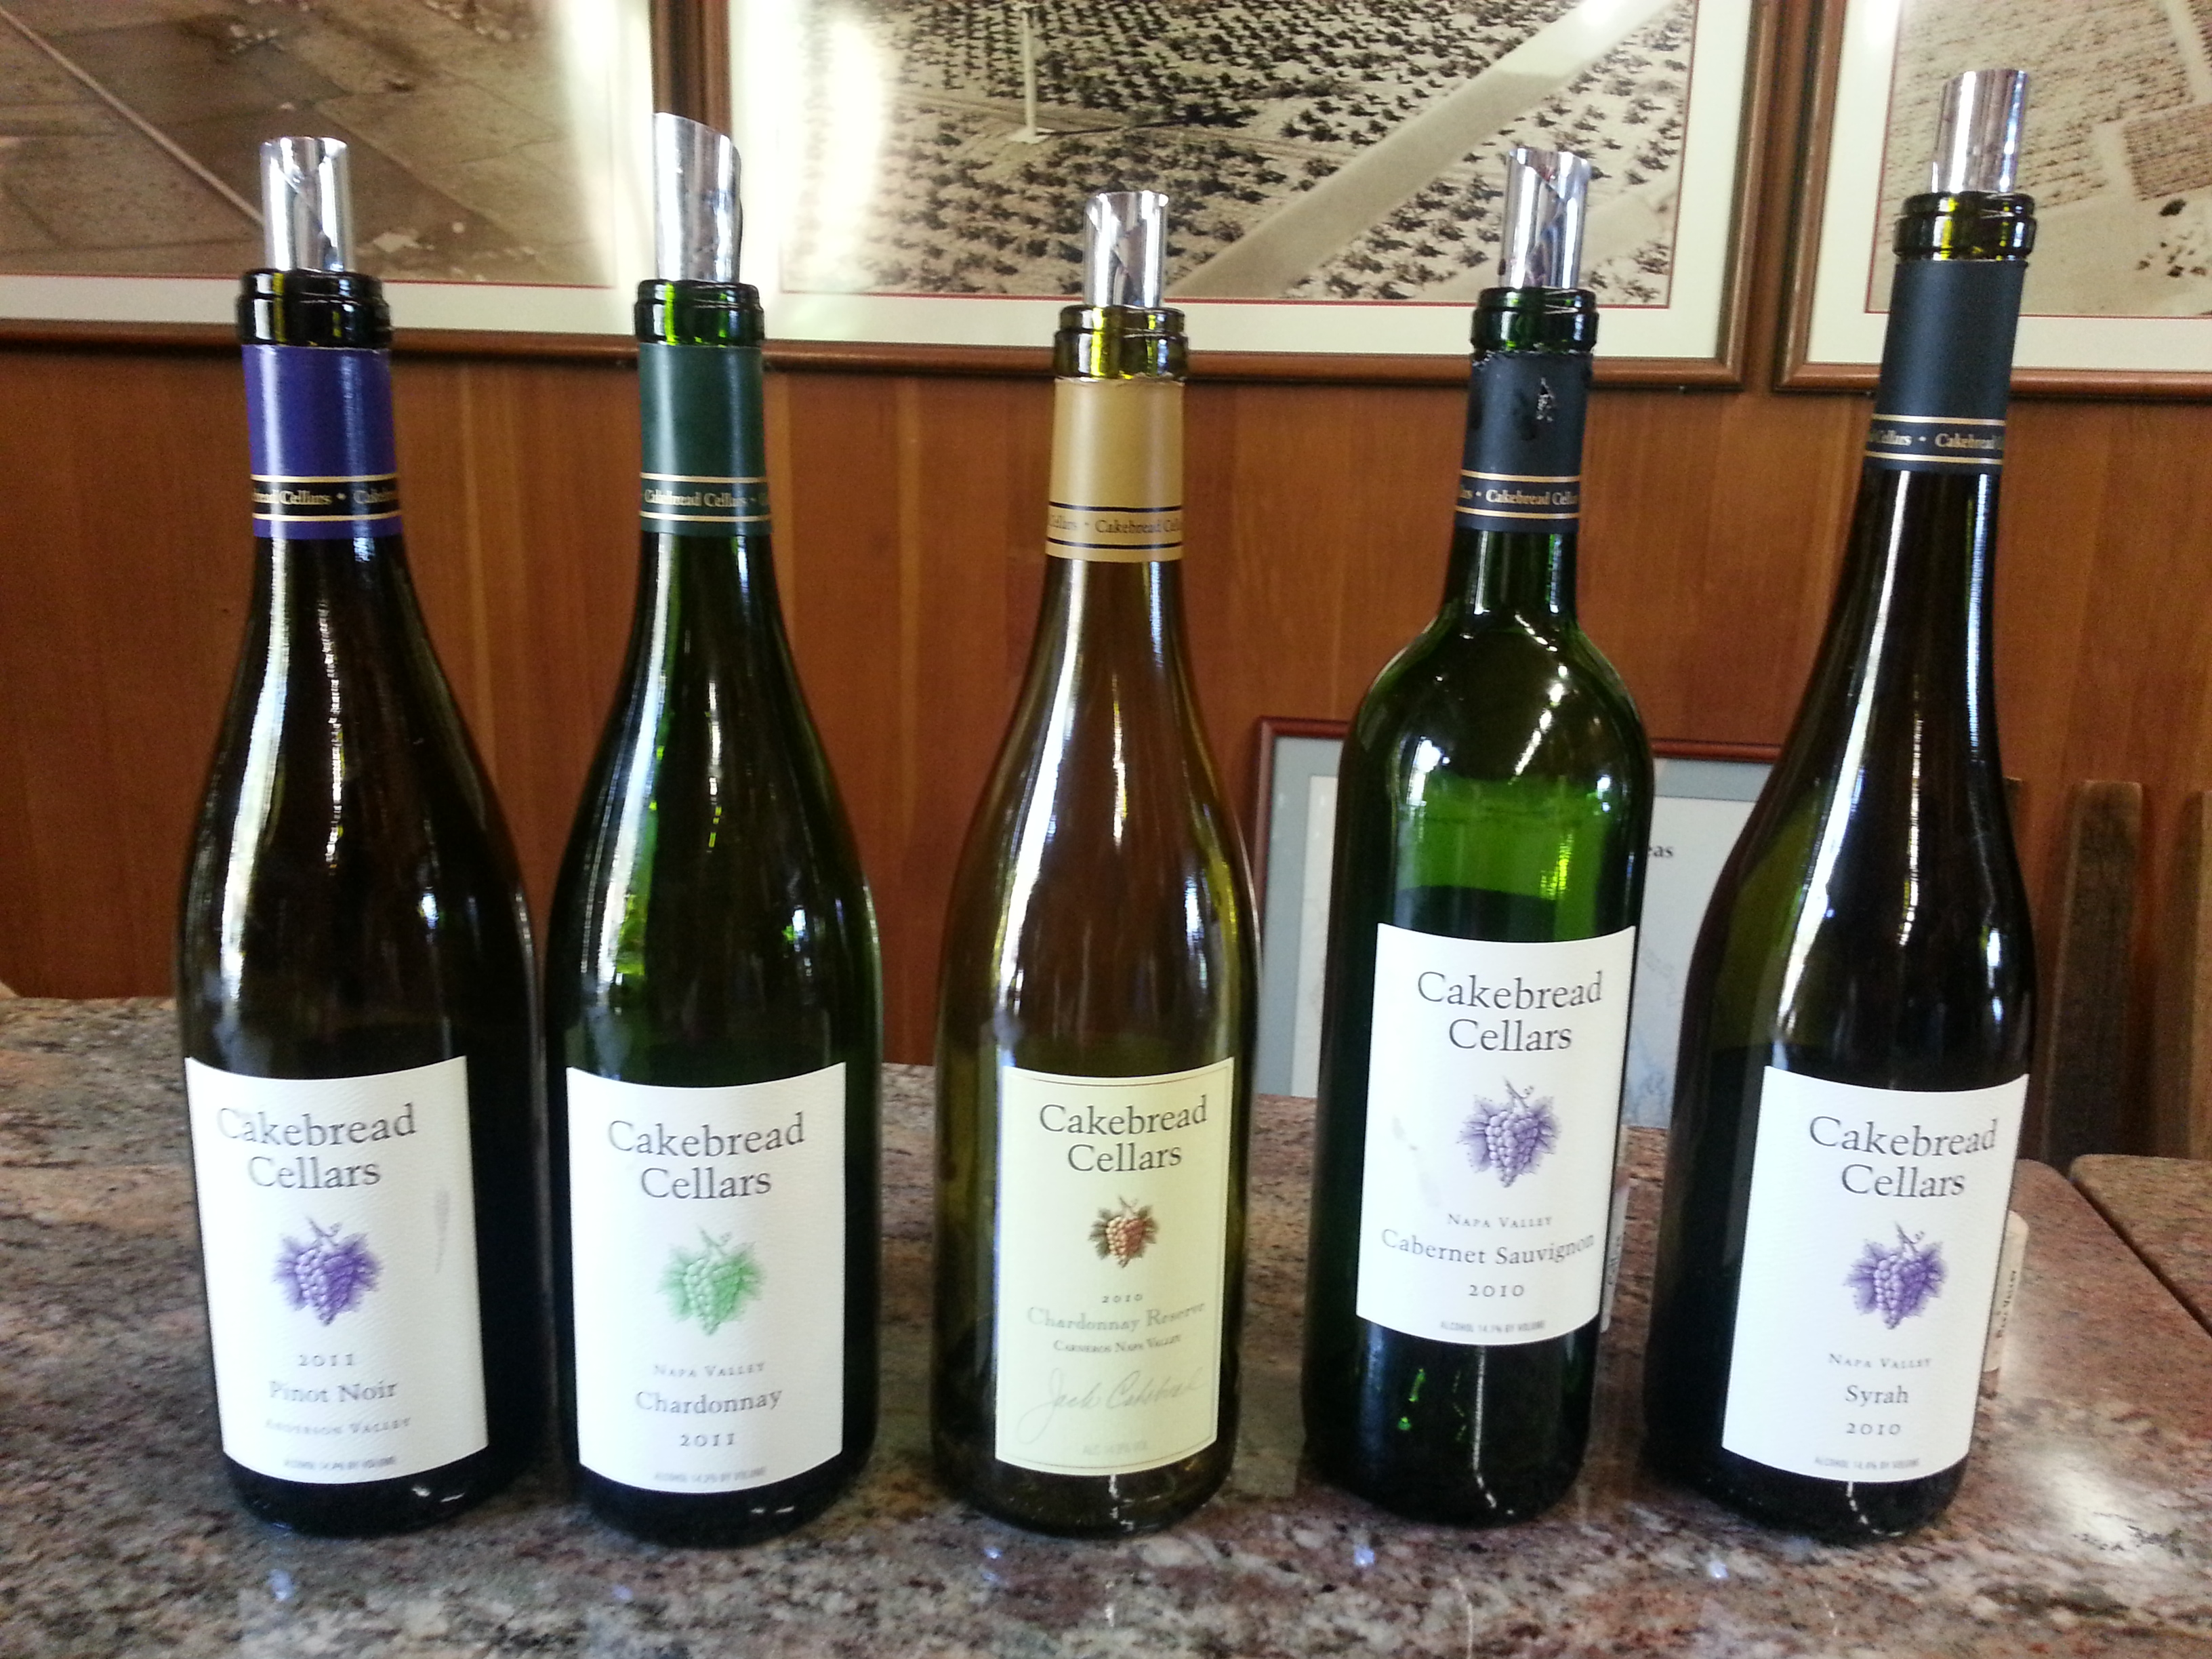 Cakebread Cellars Wine Host napa valley wine tasting & How To Wine Taste In Napa Valley For A Nominal Fee u2013 Winery Finder ...